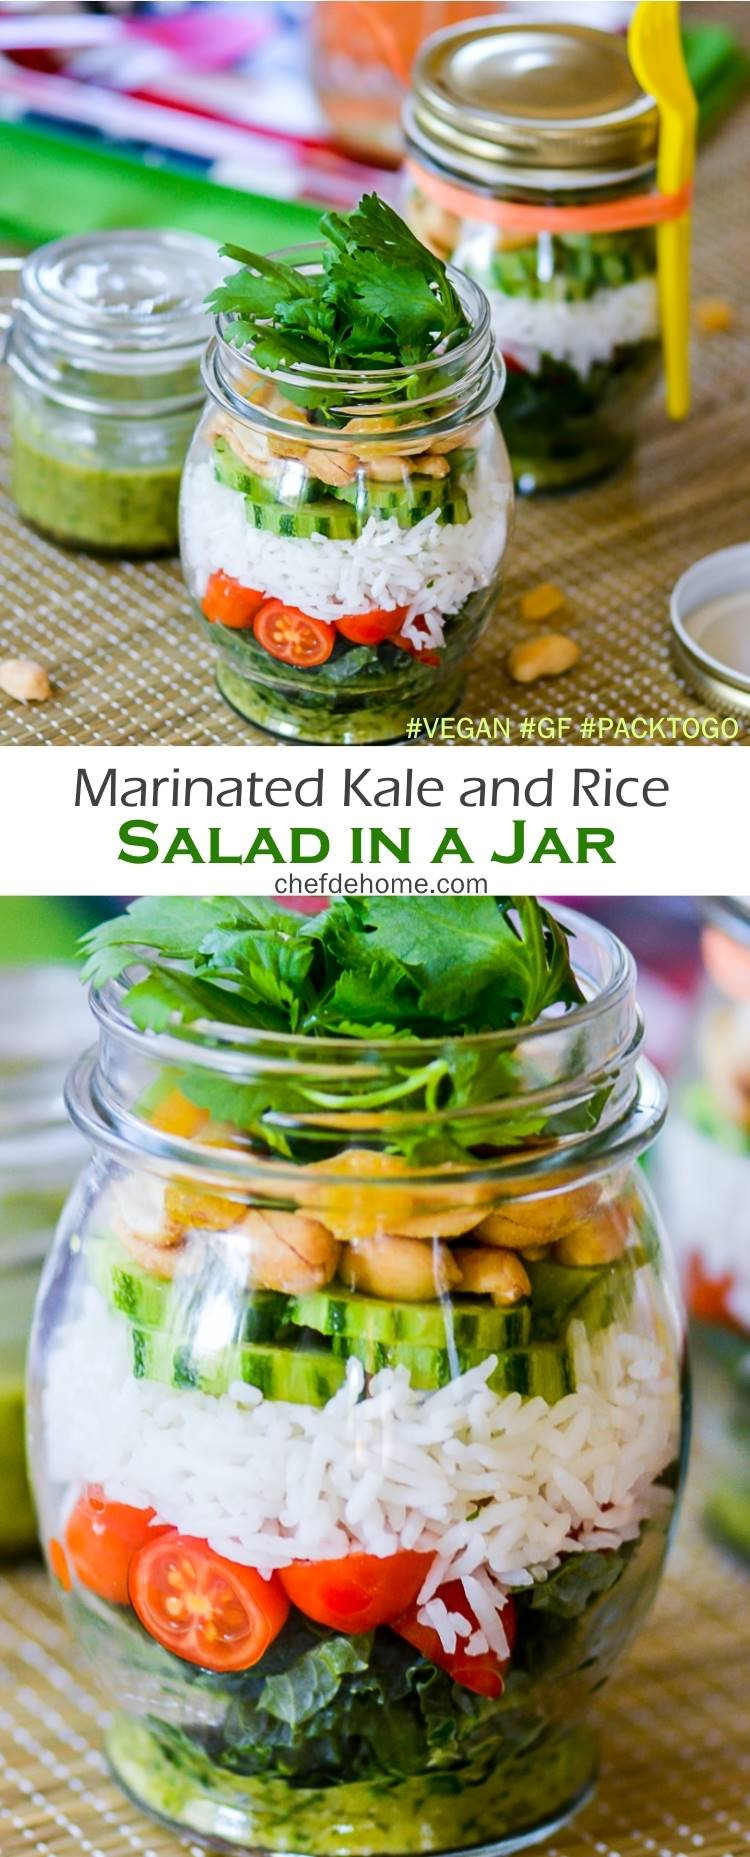 Delicious Salad in a jar for picnic or family fun Road Trip | chefdehome.com